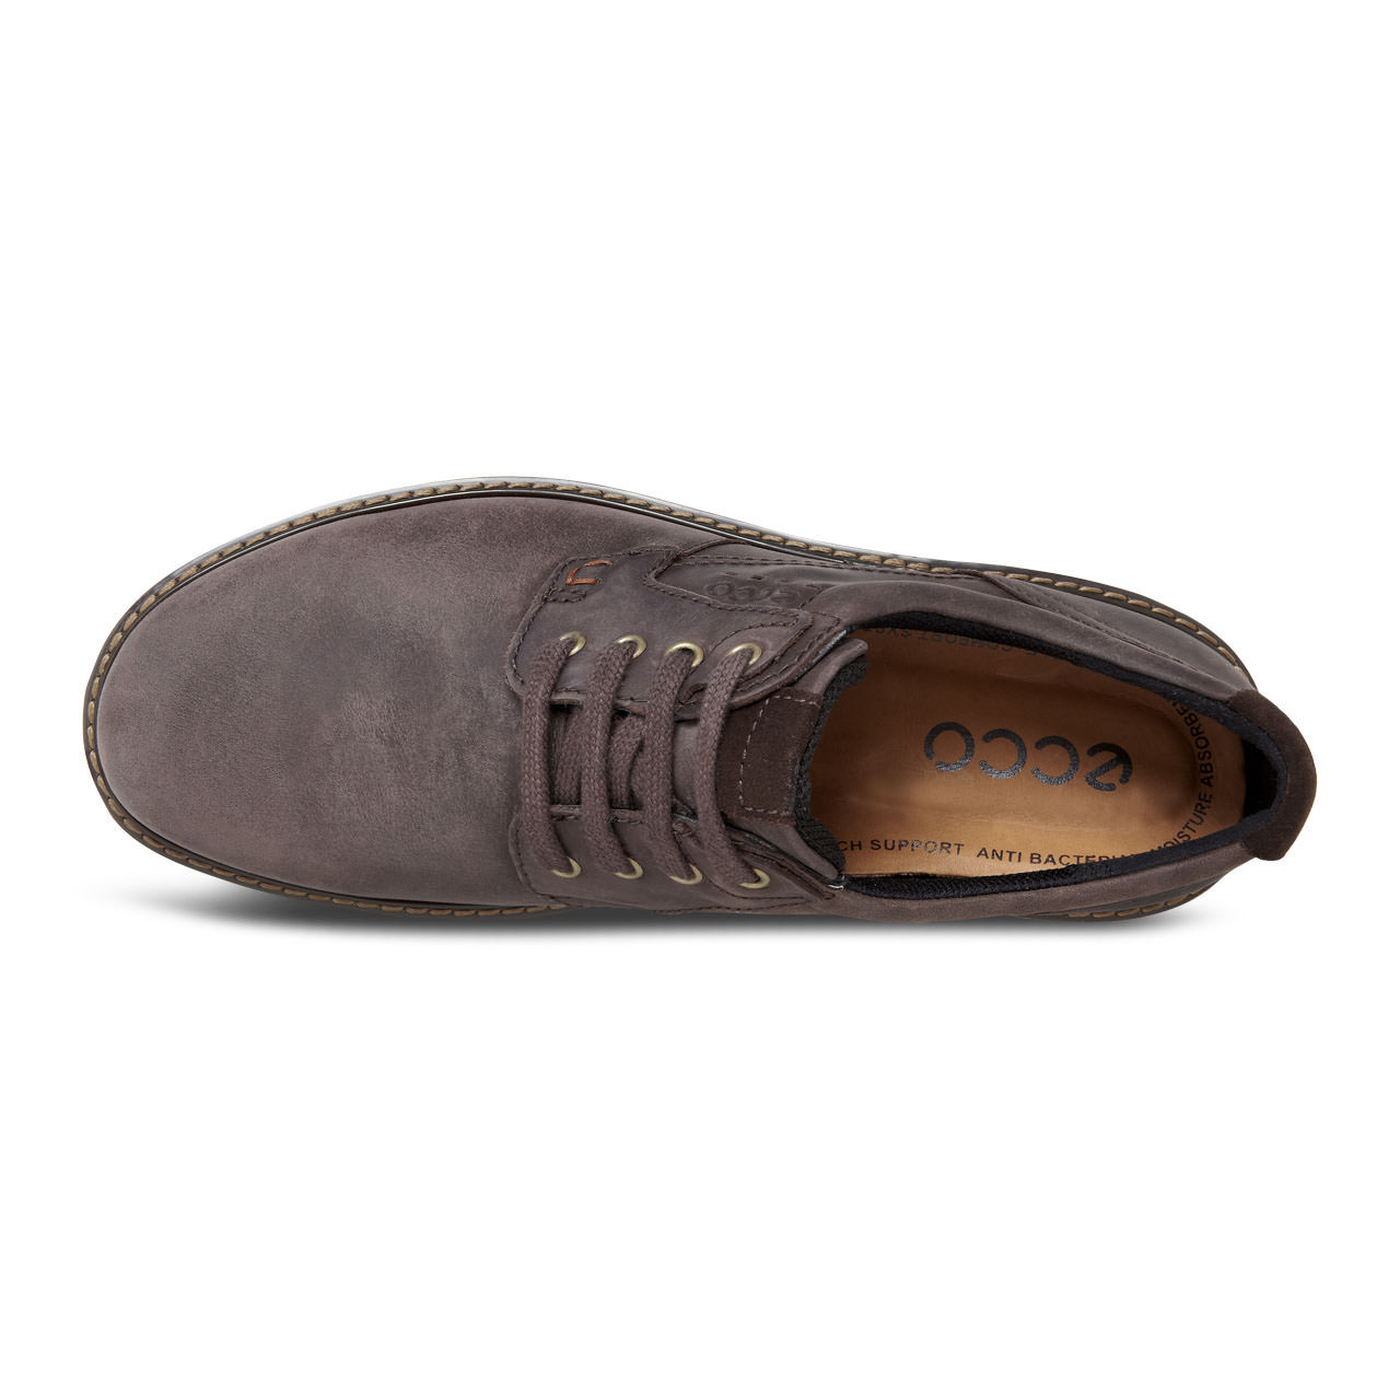 ECCO Turn GTX Plain Toe Tie